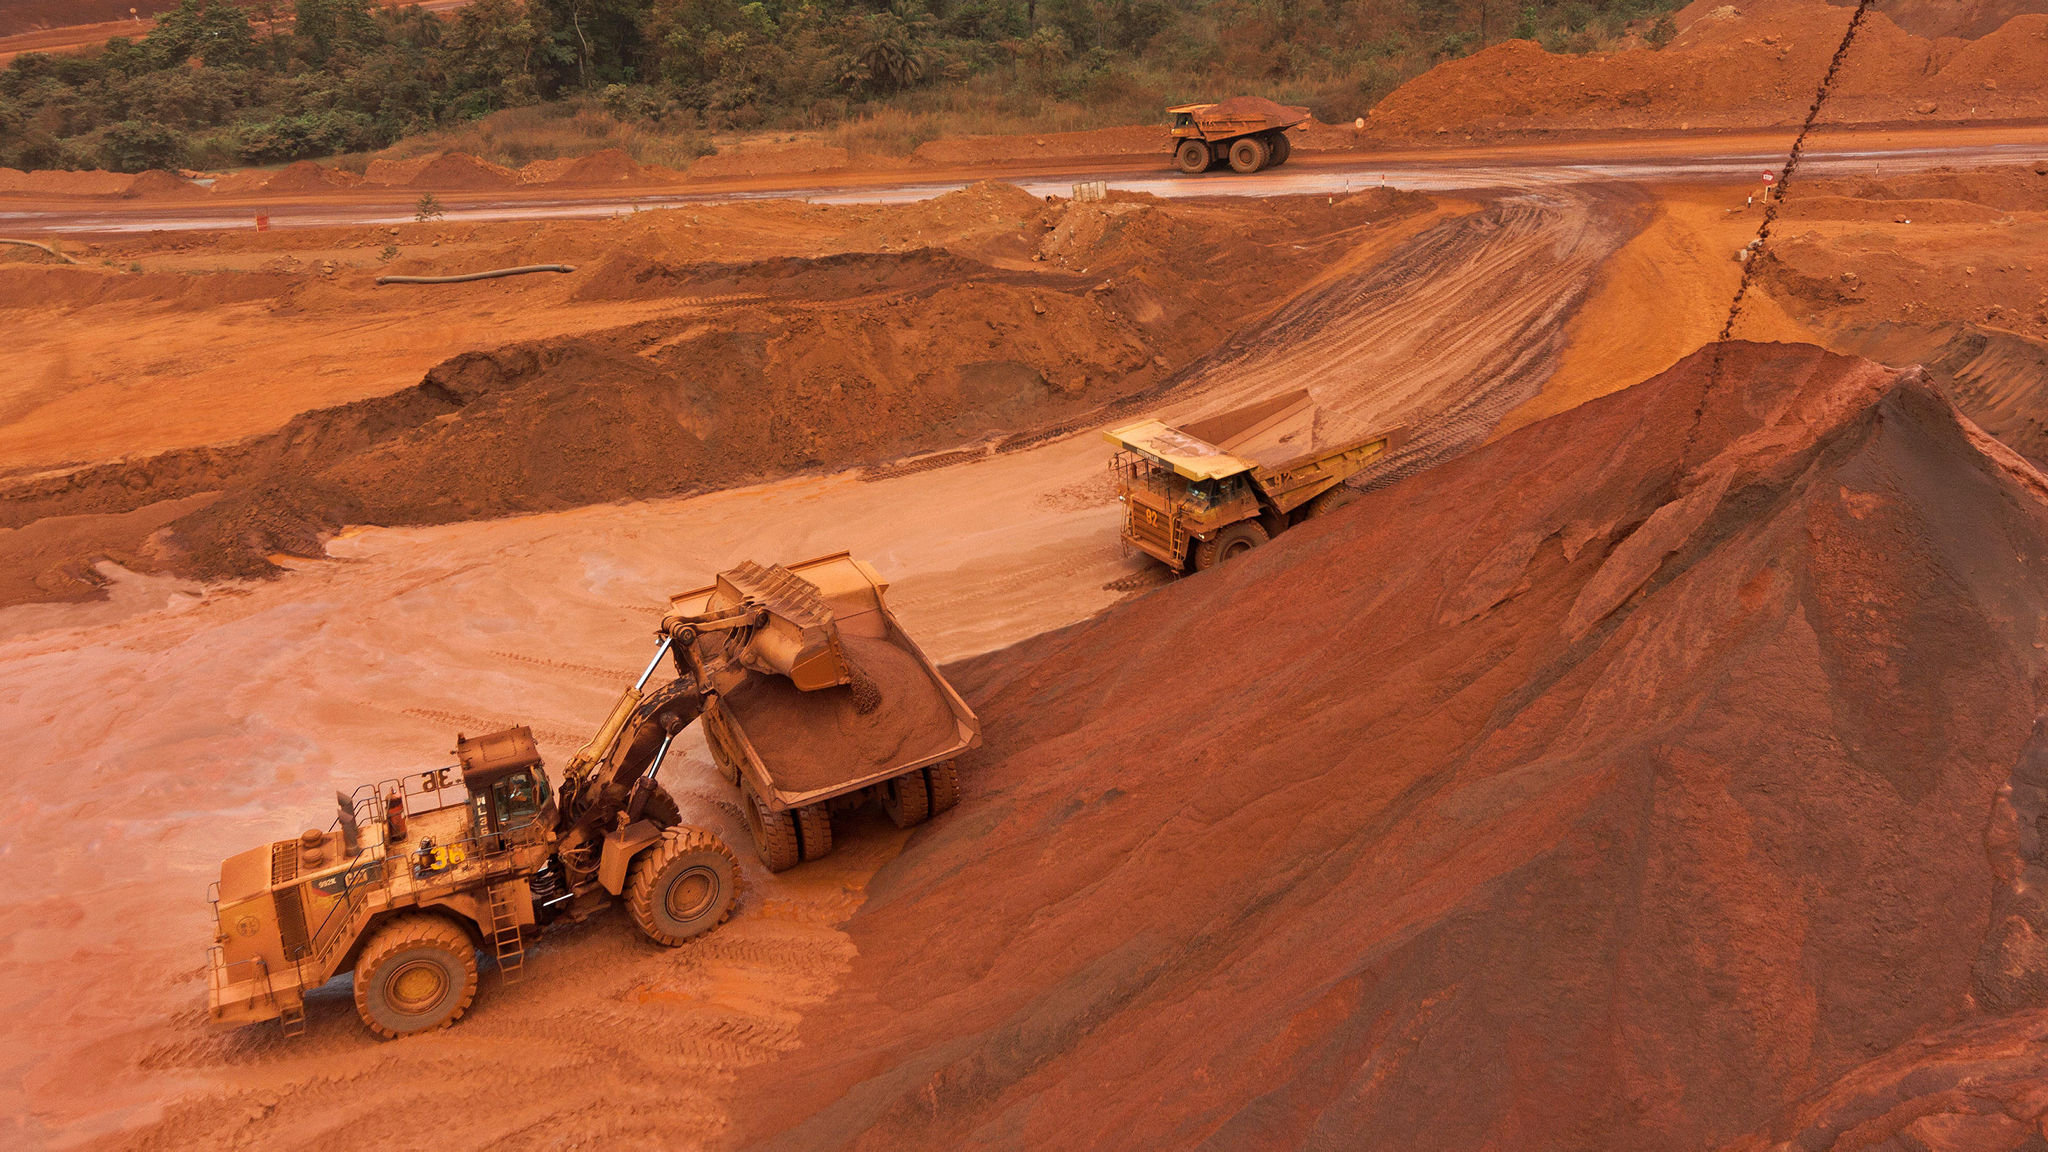 Sierra Leone mine dispute raises fears over grab for resources